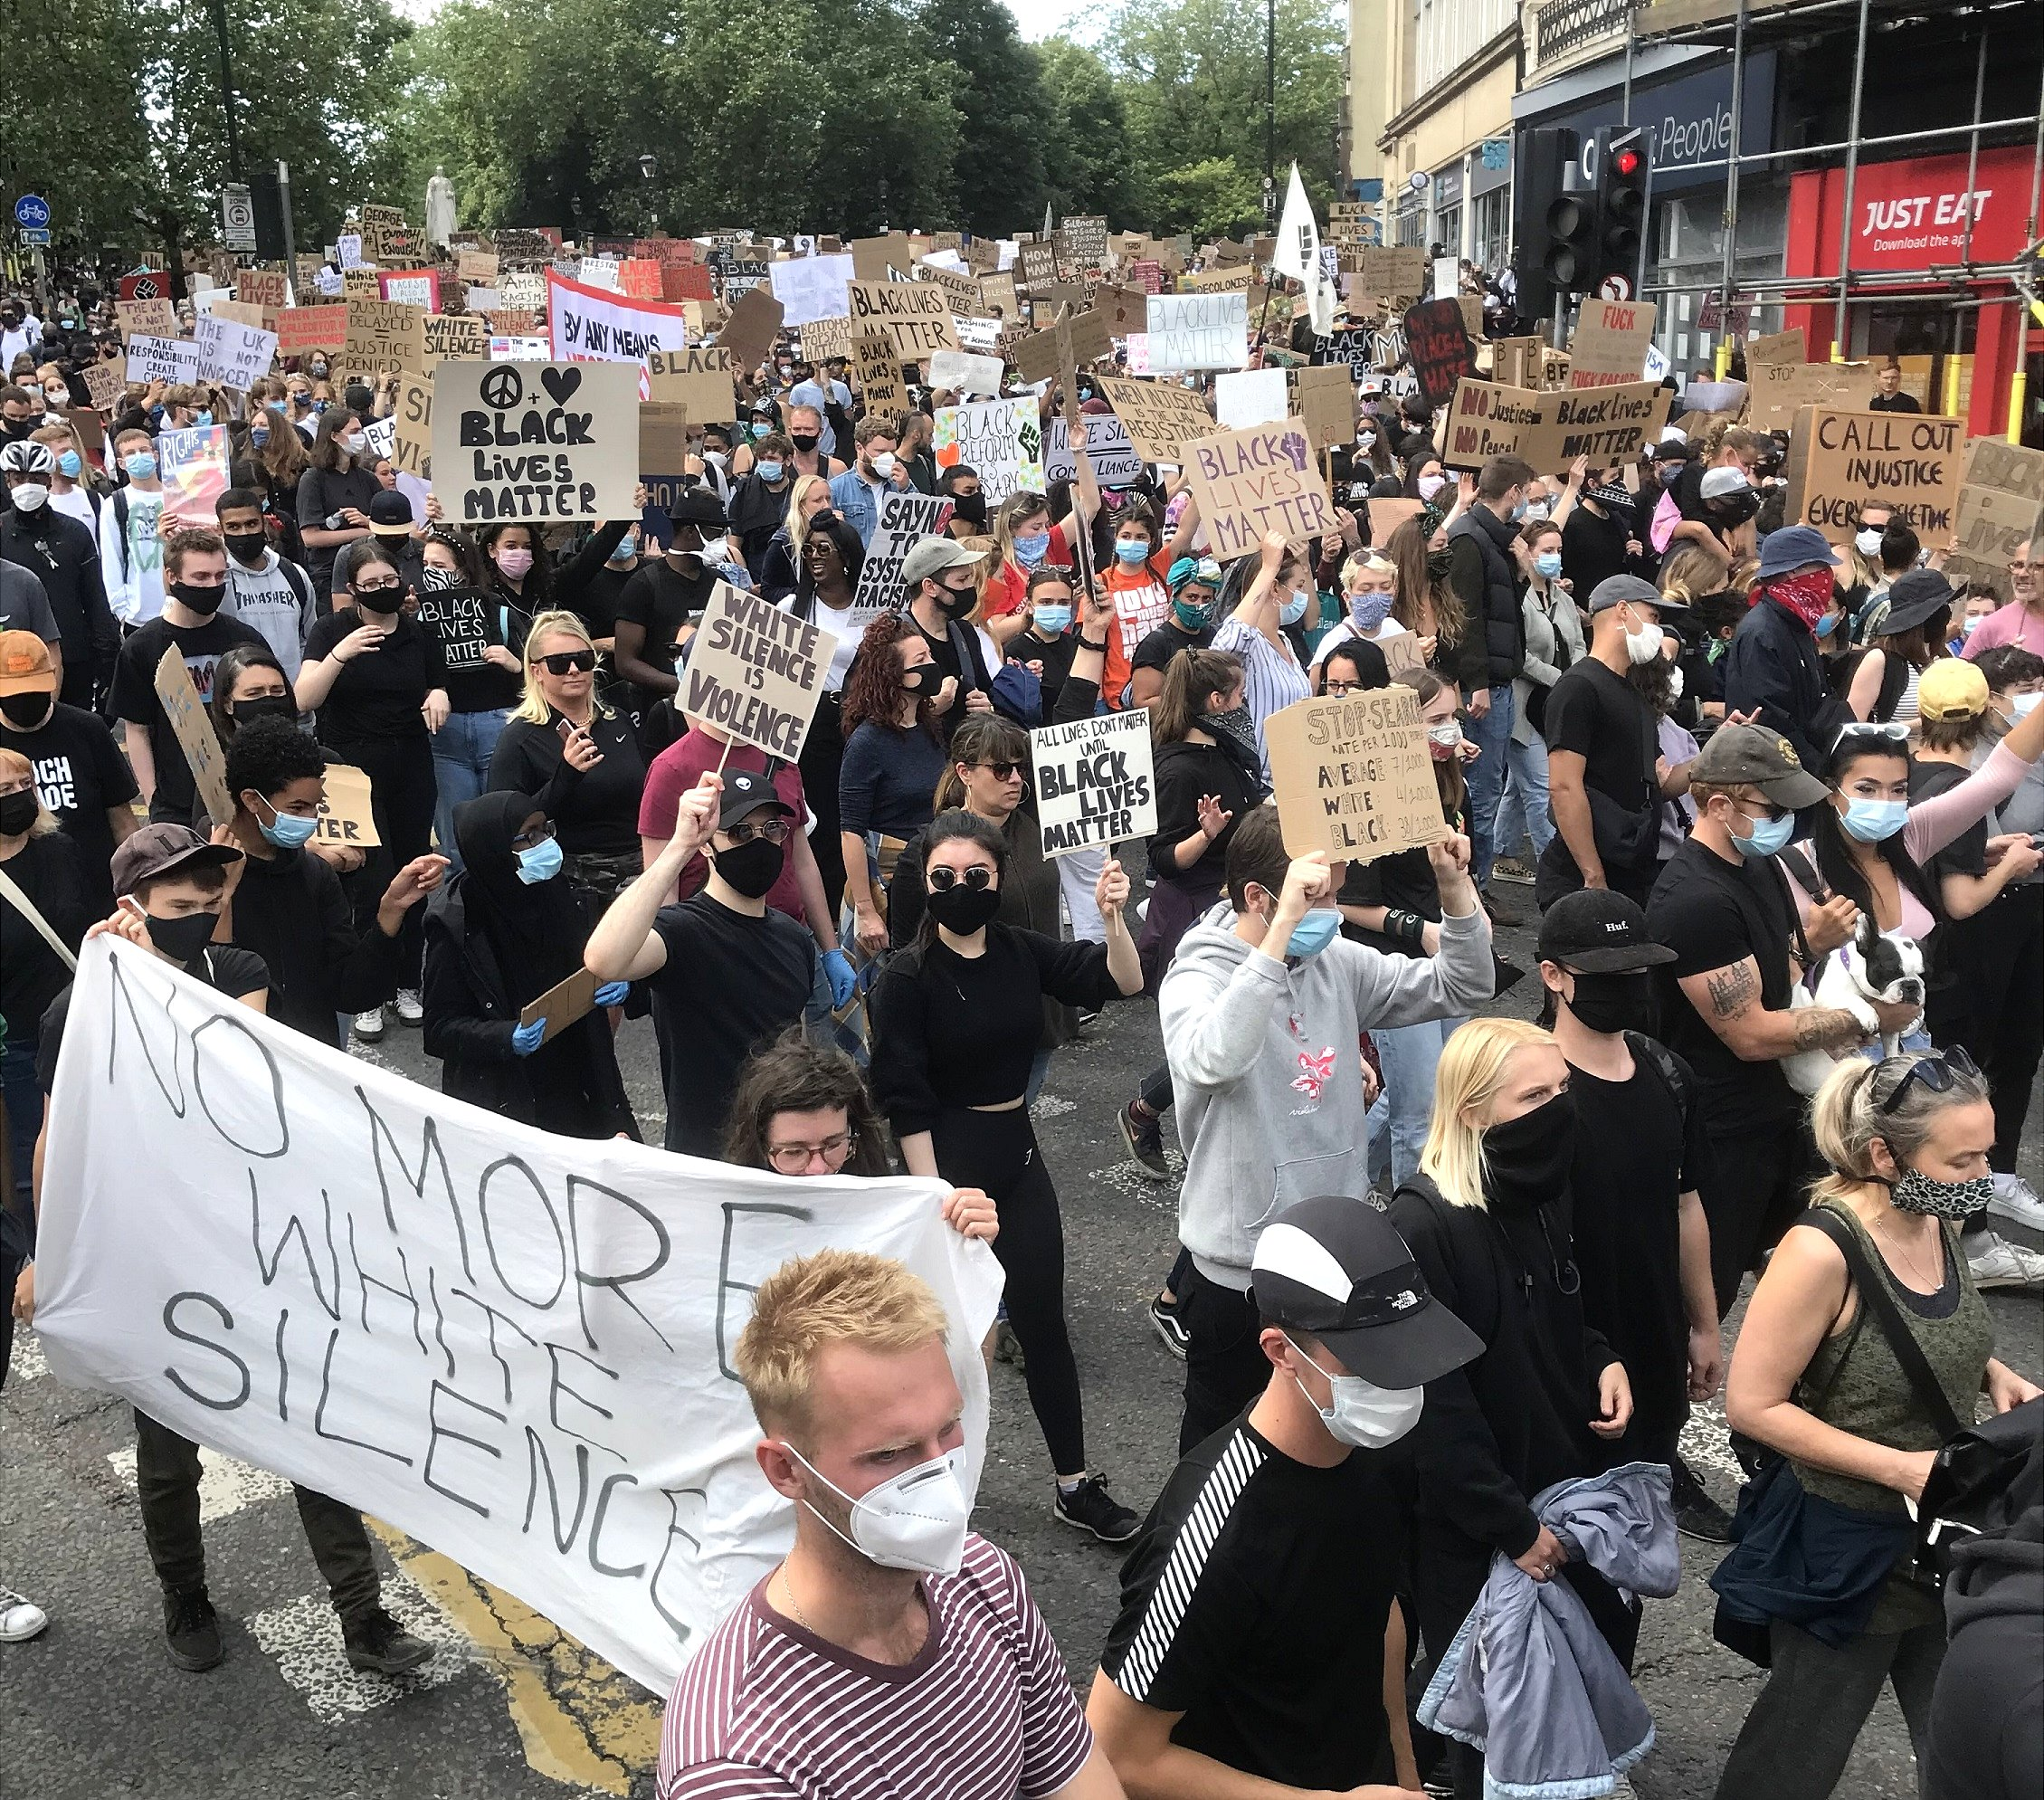 Black Lives Matters march in Bristol on 7 June 2020